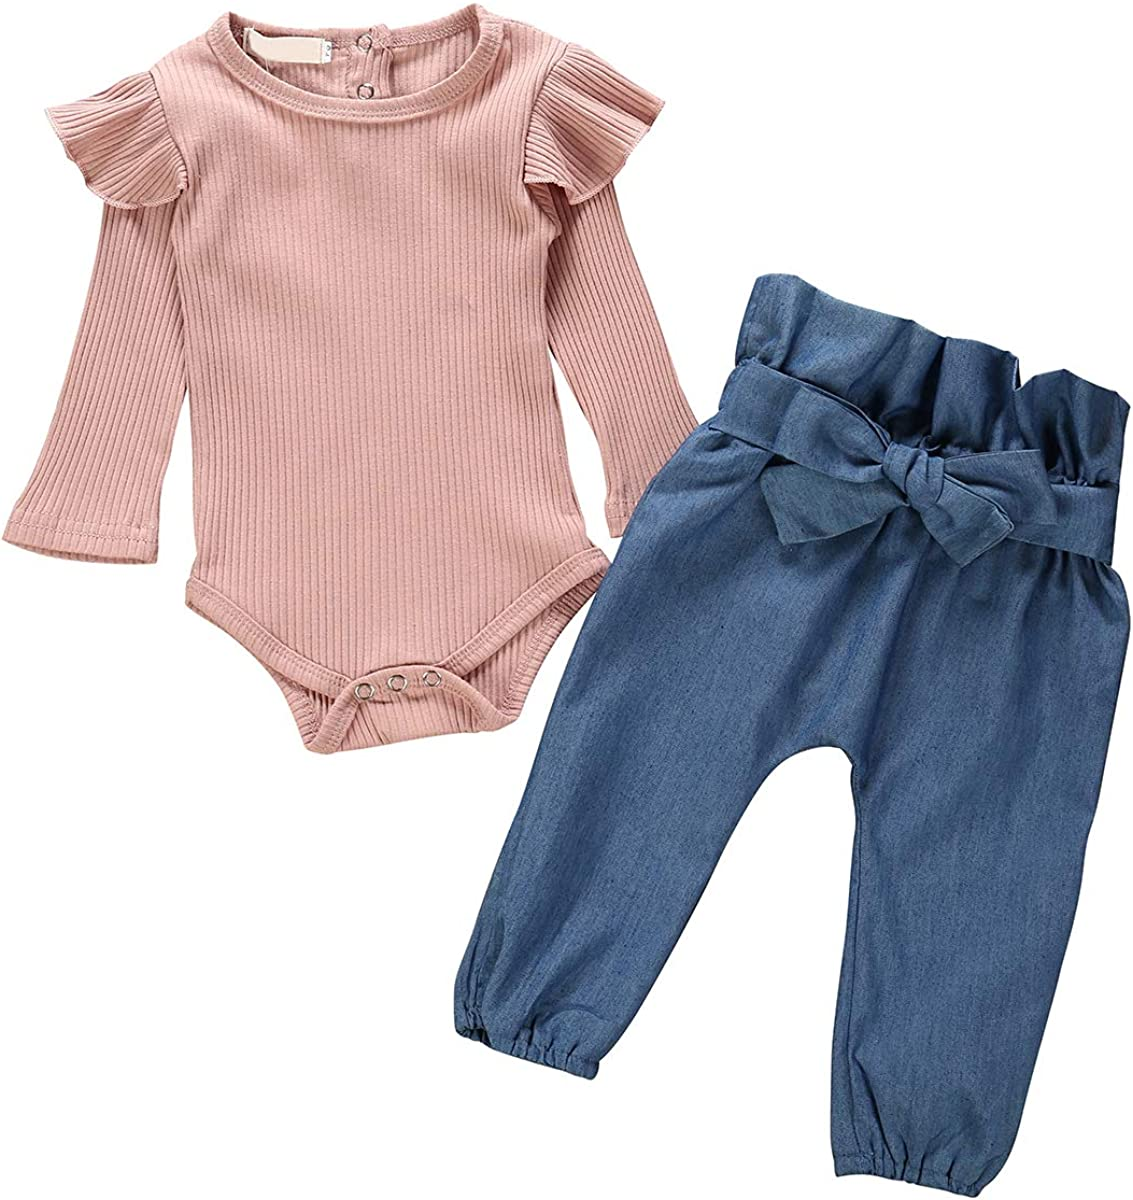 Pants puseky Toddler Baby Girls Clothes Outfit Long Sleeve Ruffled Romper